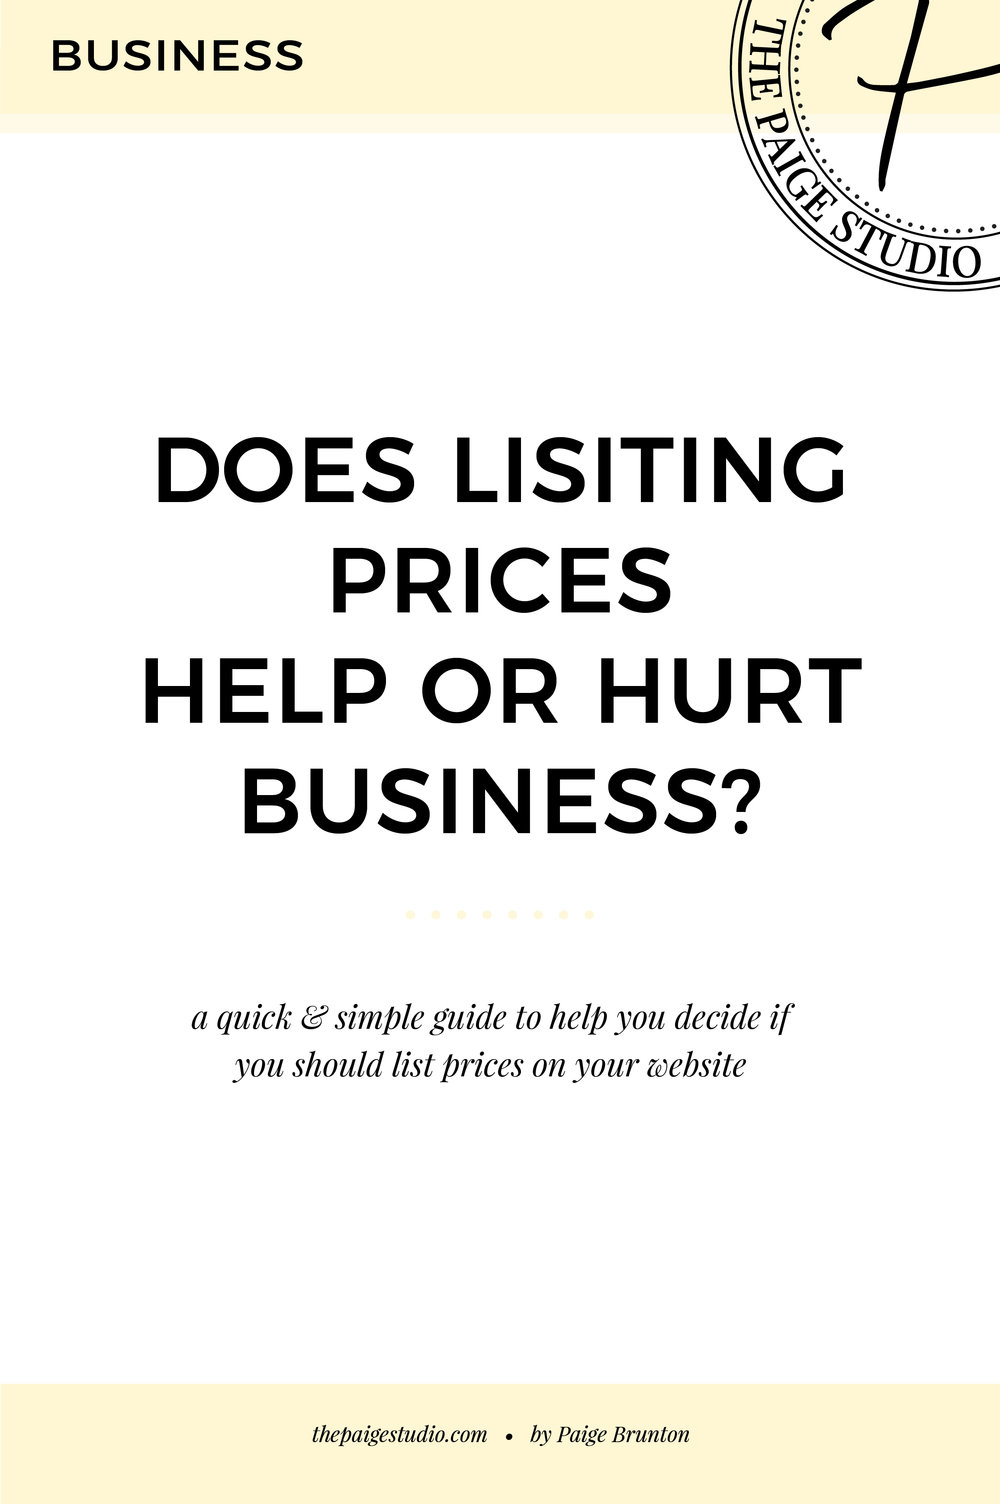 A simple guide; determining if you should list prices on your website or not?